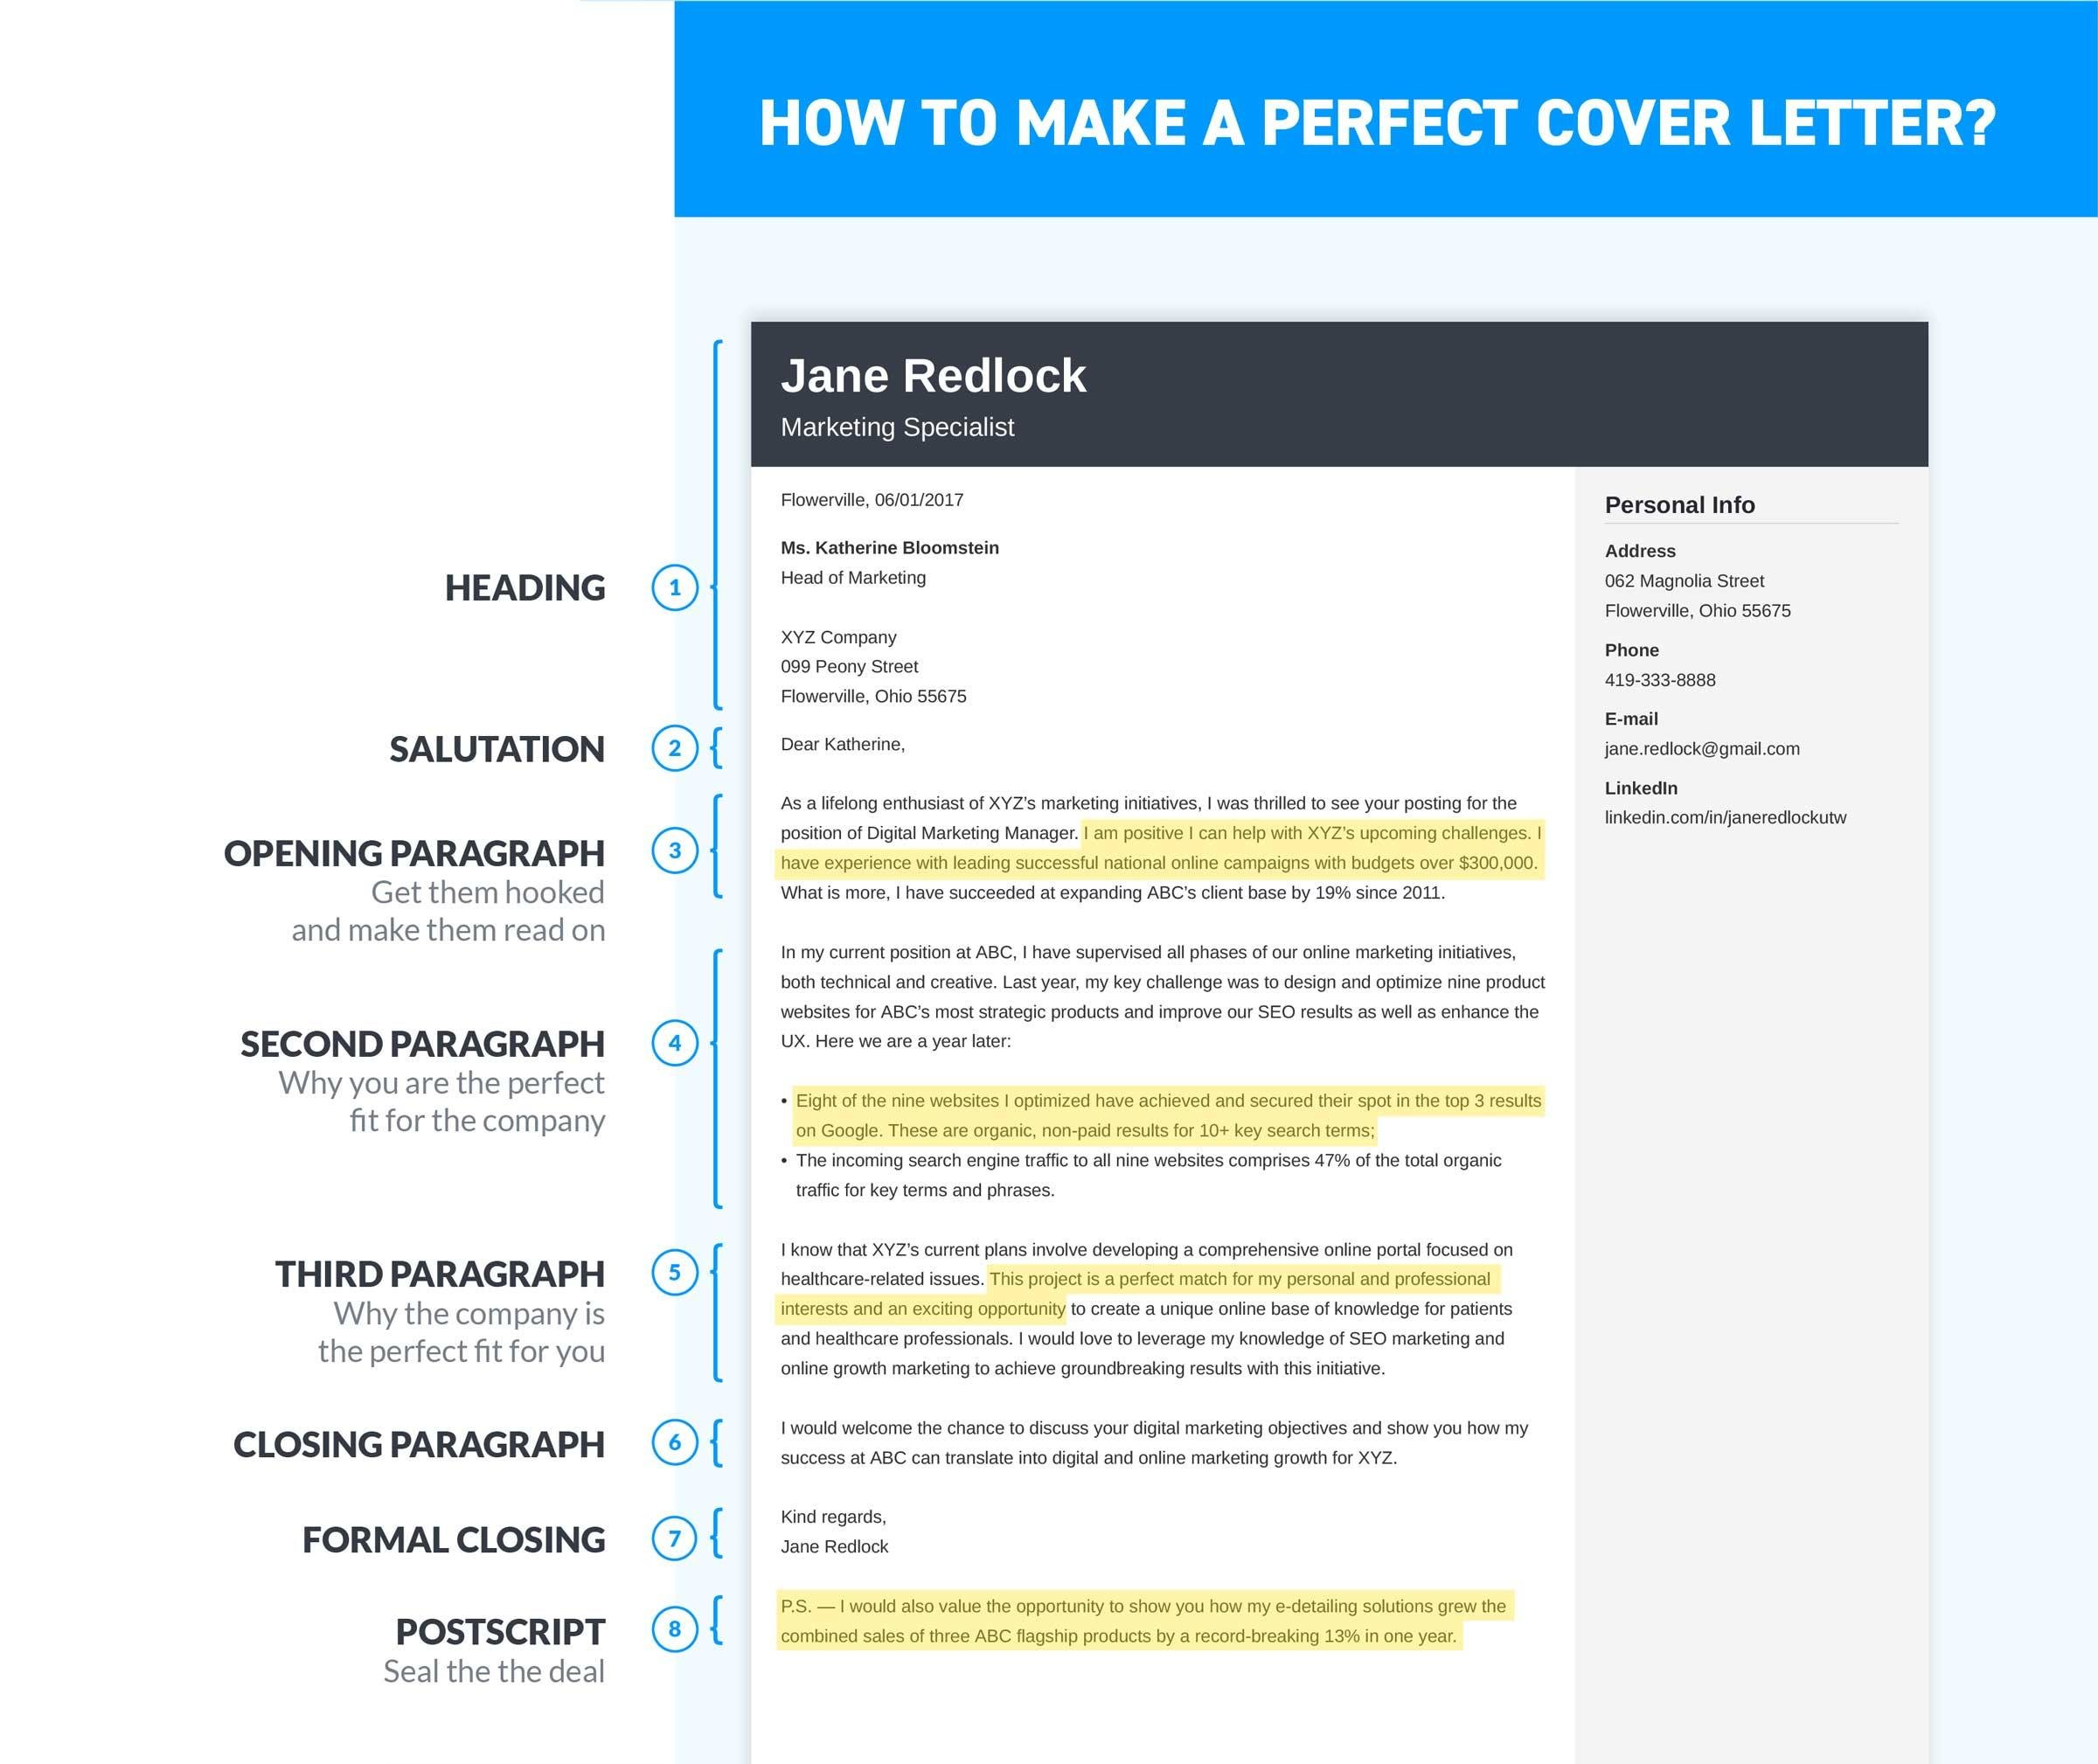 how to make a perfect cover letter infographic - How To Make A Cover Letter